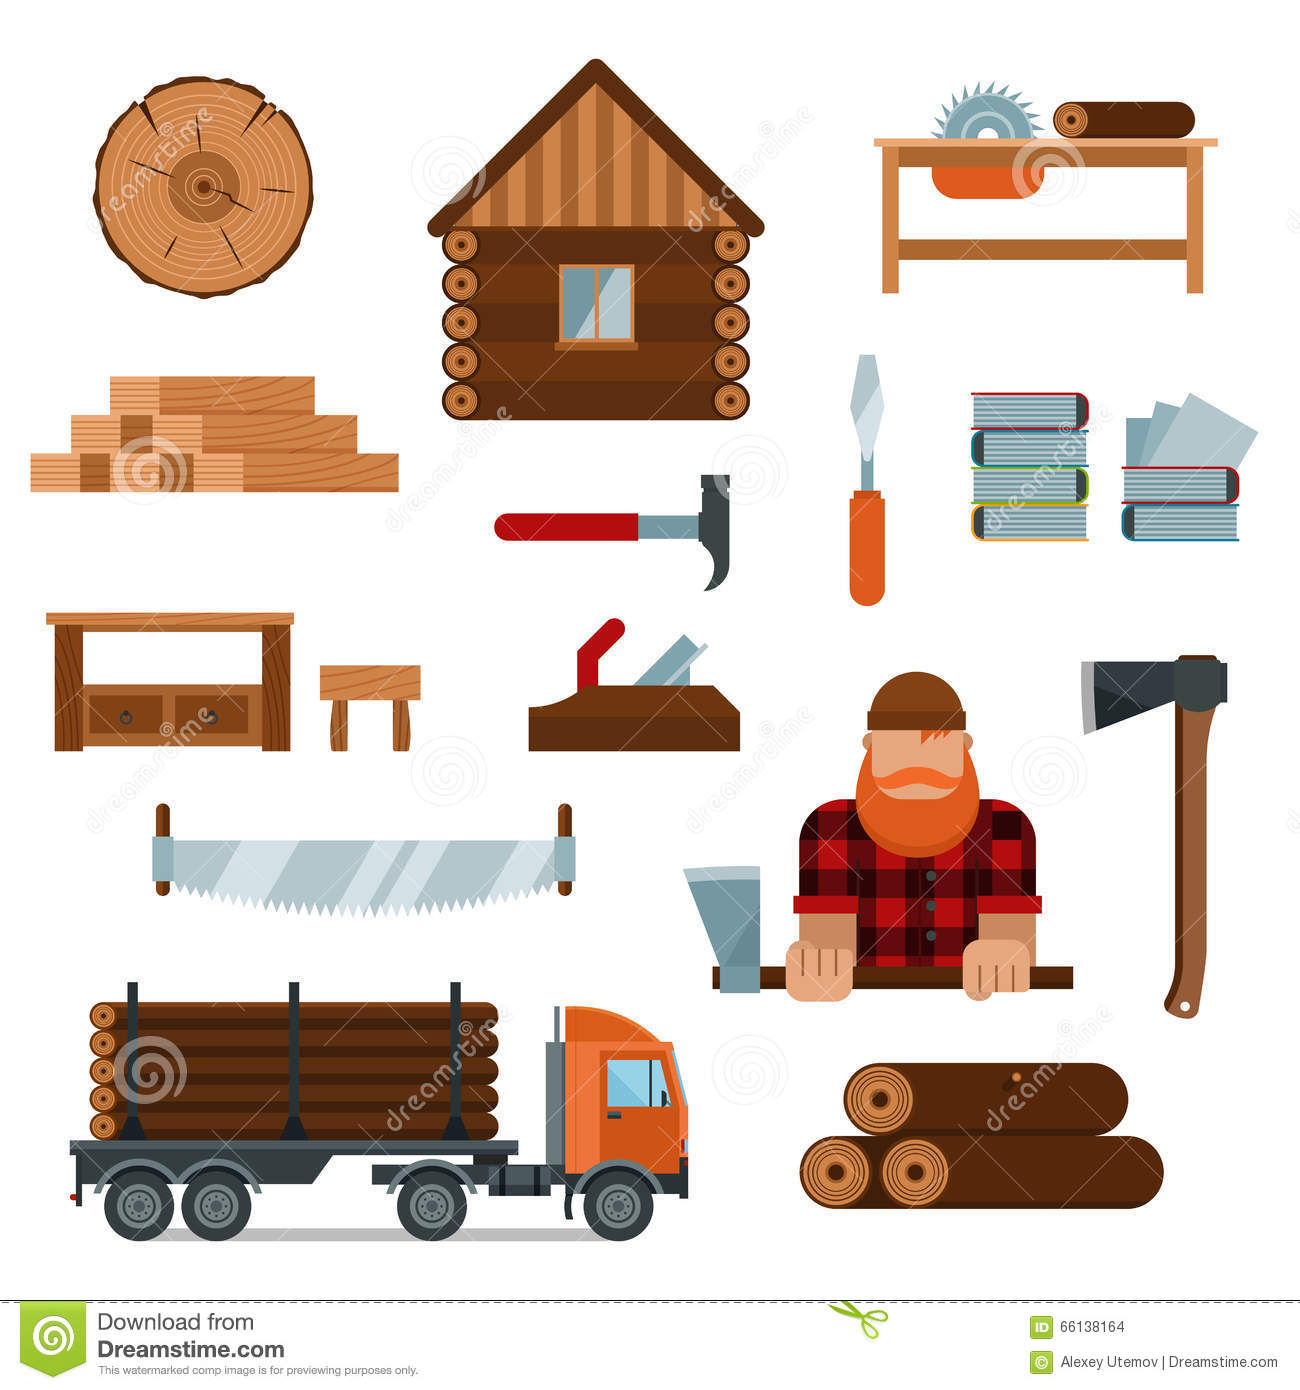 Lumberjack Character With Tools Vector Infographic Elements Stock 58018140